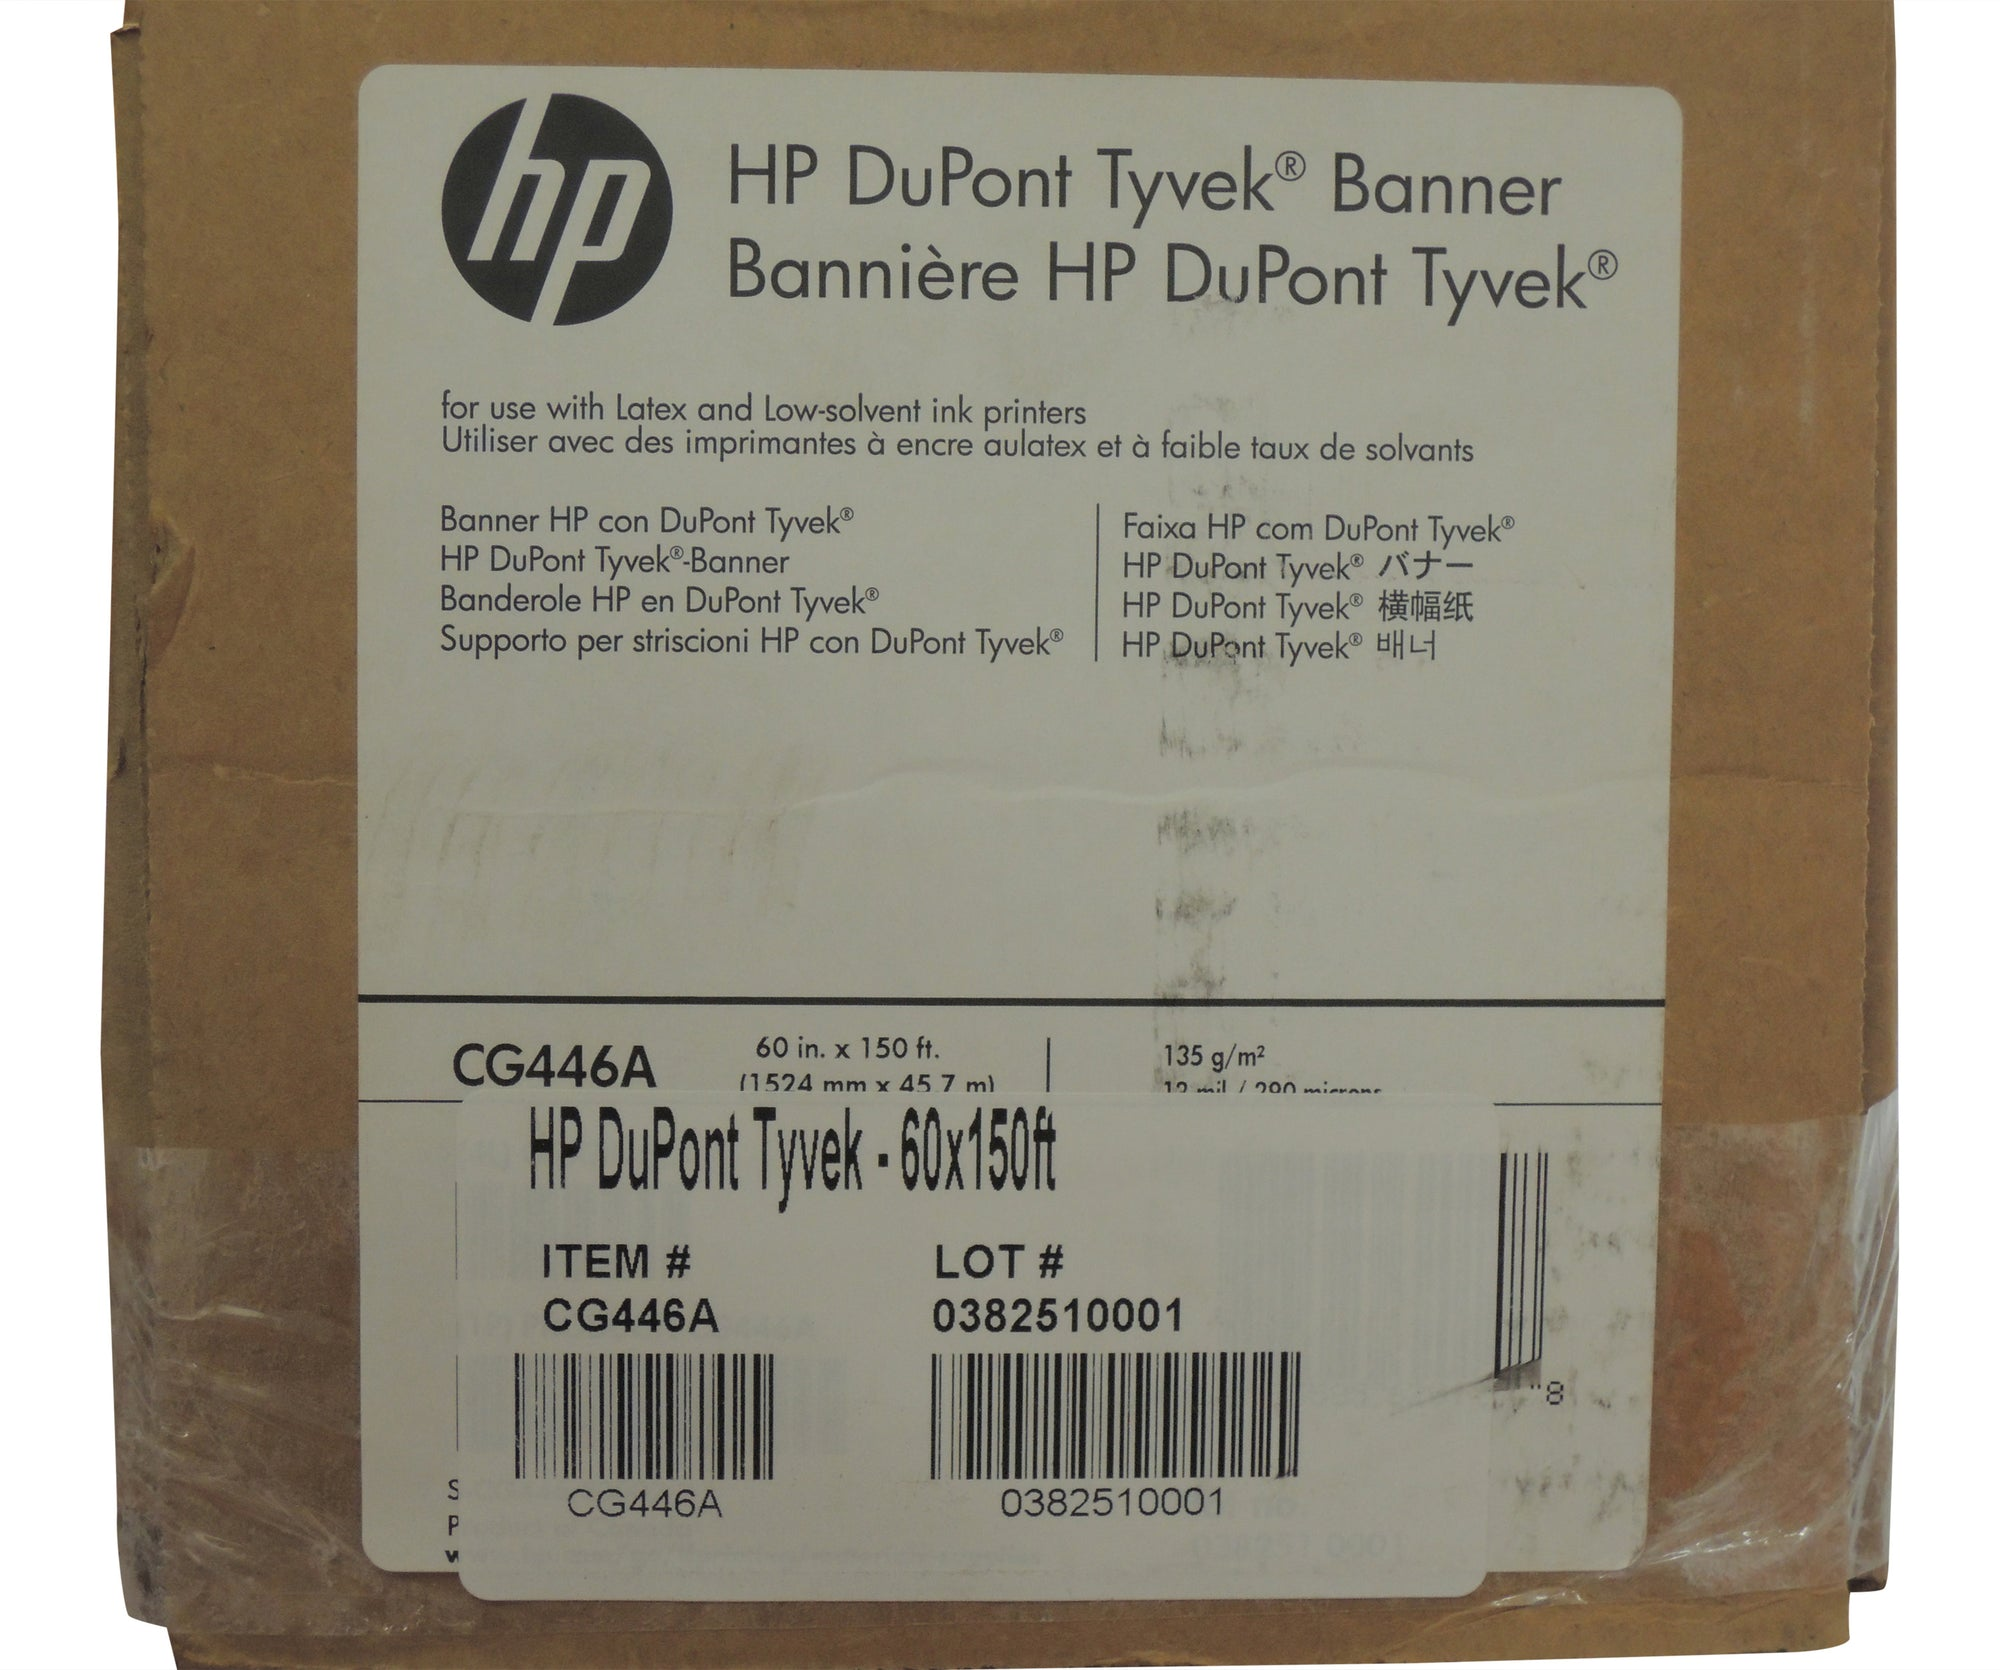 "HP CG446A Dupont Tyvek 60 inch x 150 feet, 3"" core, Latex compatible"